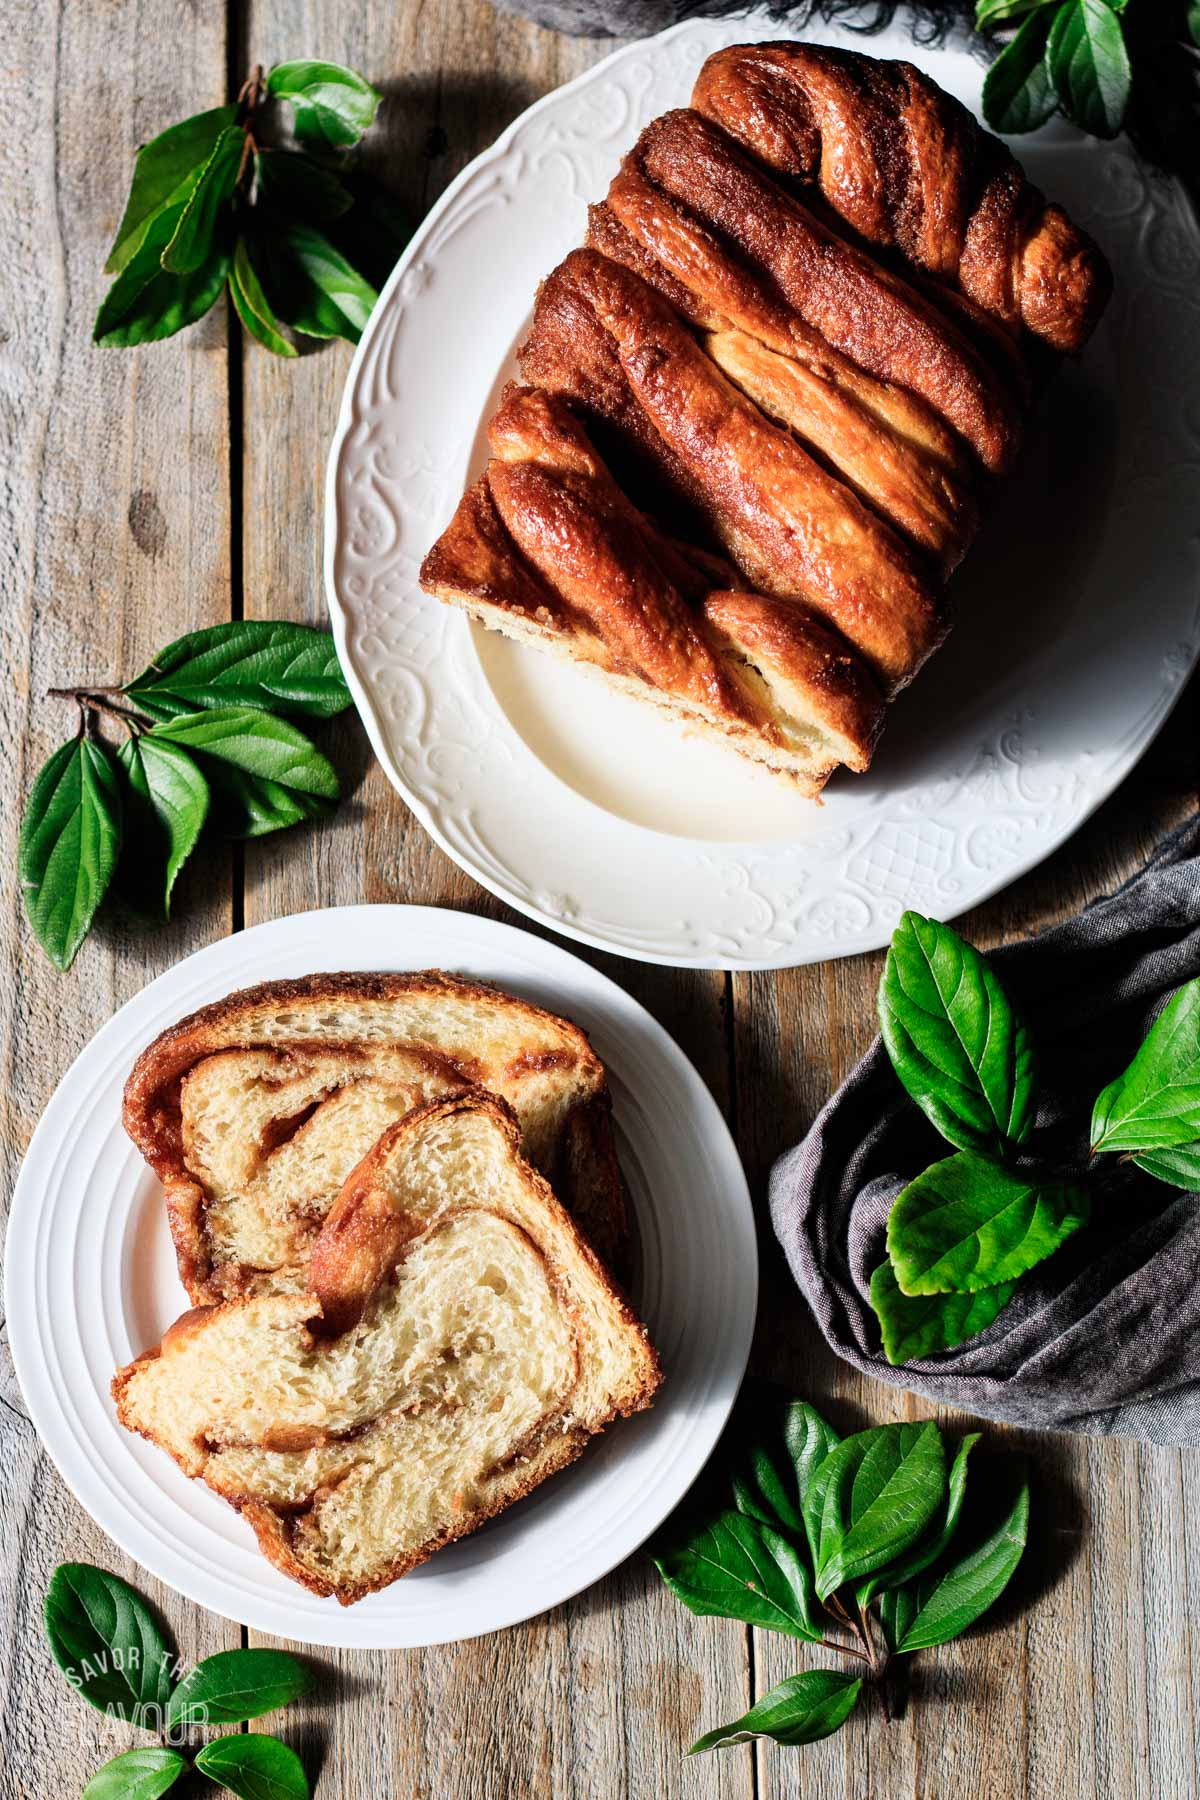 two slices of cinnamon babka on a white plate with the loaf